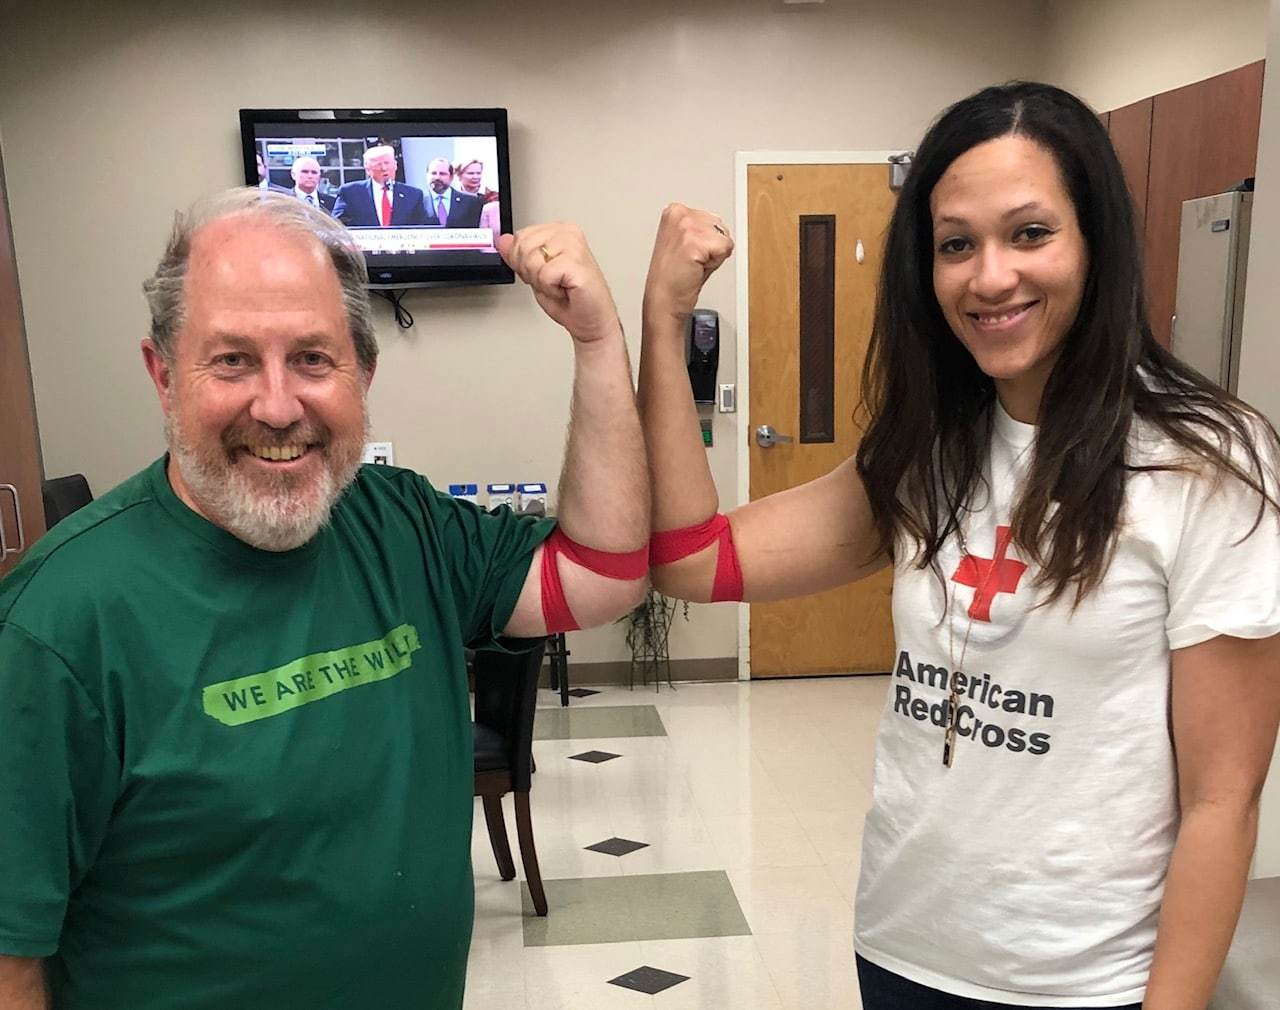 Pat Byington and Annette Rowland show off that they just finished donating blood